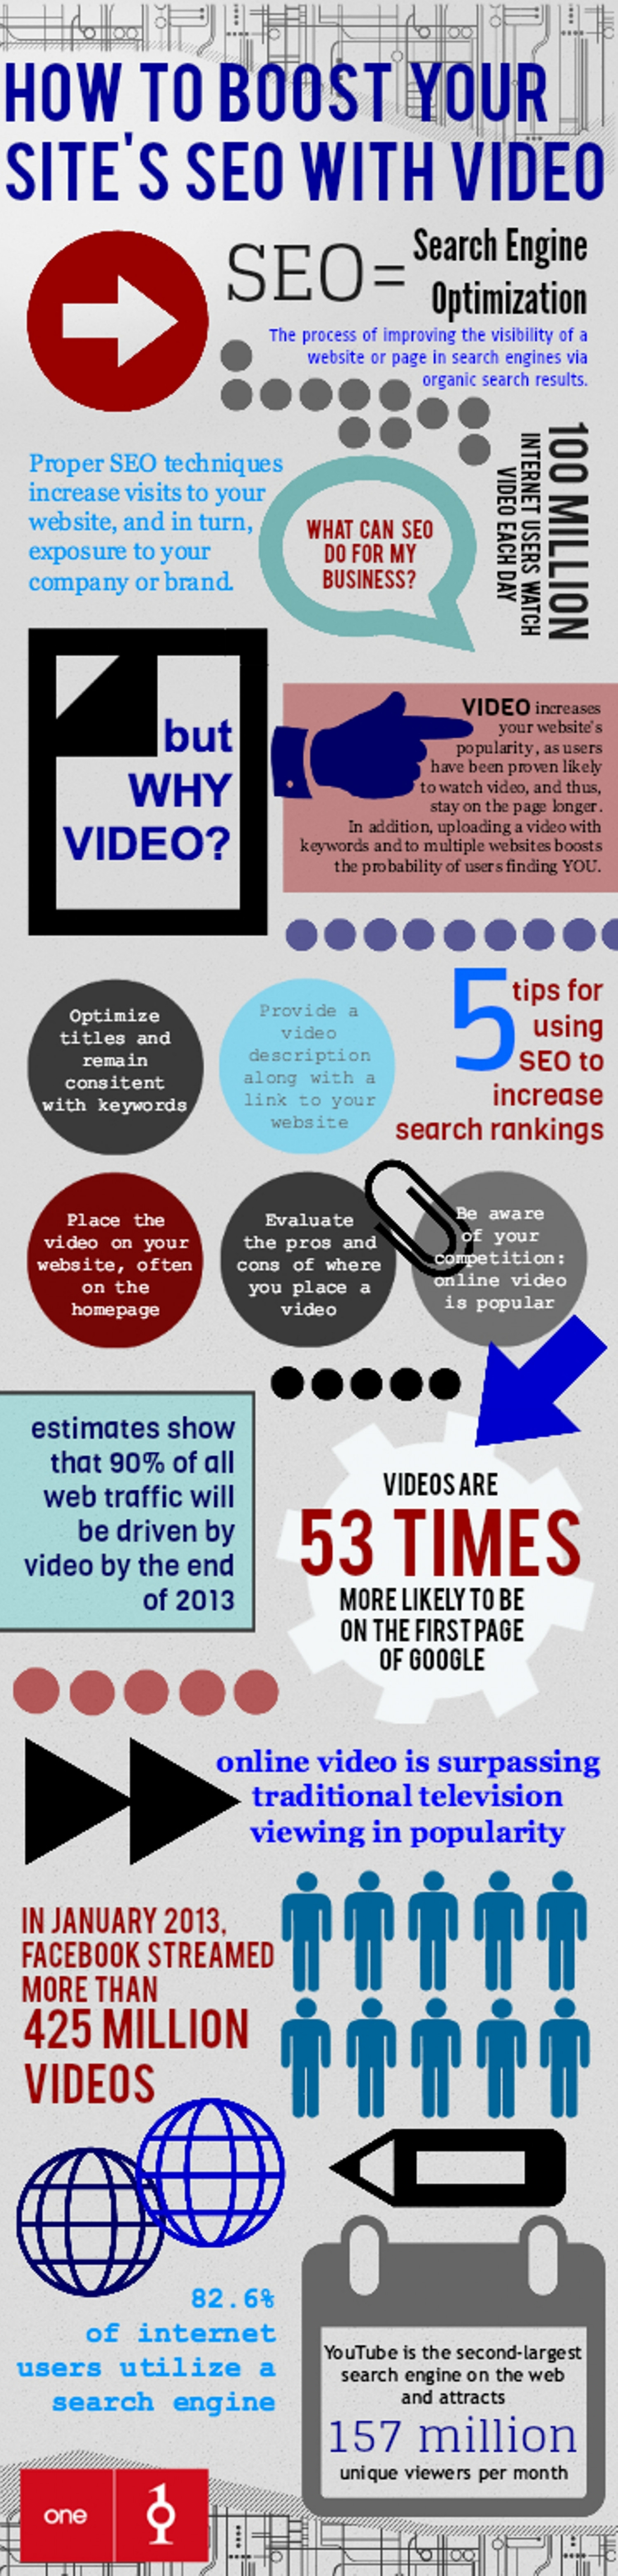 How to Boost Your Website's SEO with Video  Infographic